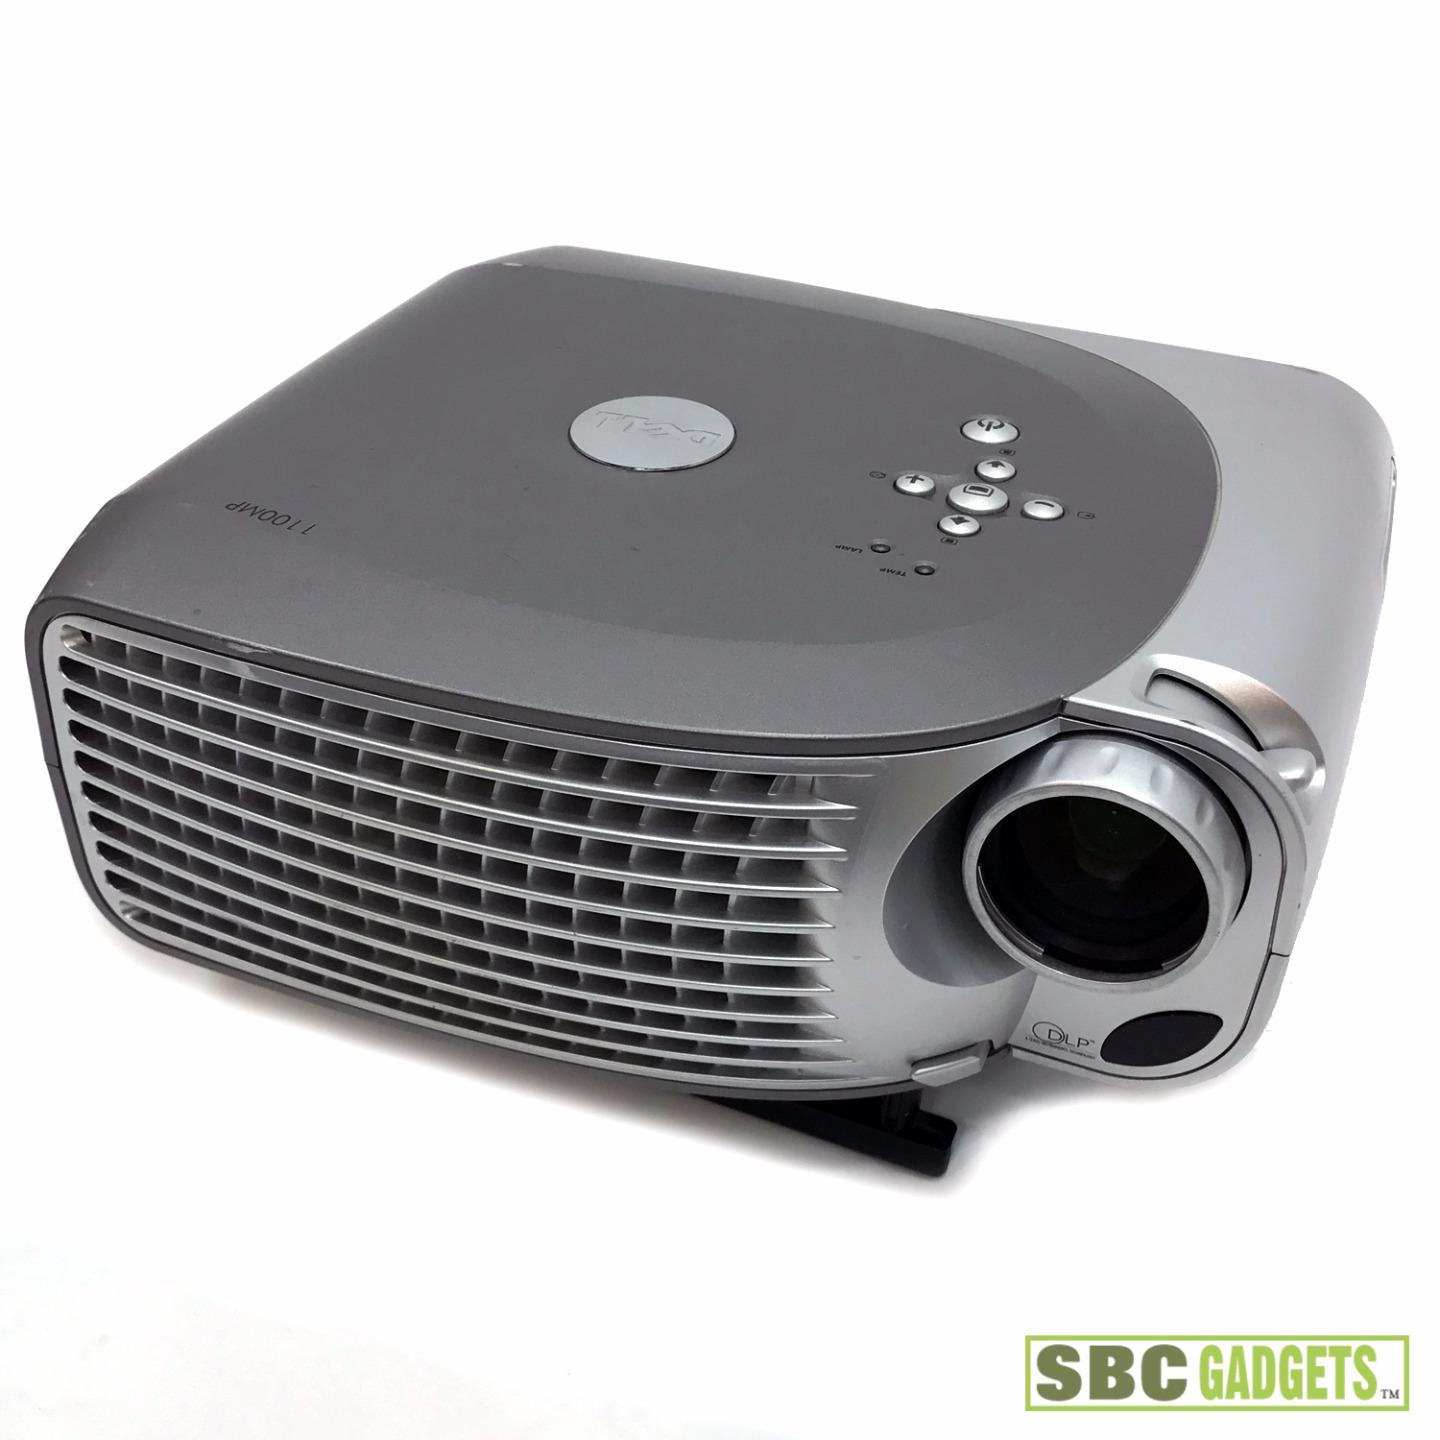 Dell svga dlp portable projector 1 400 lumens hd model for Dlp portable projector